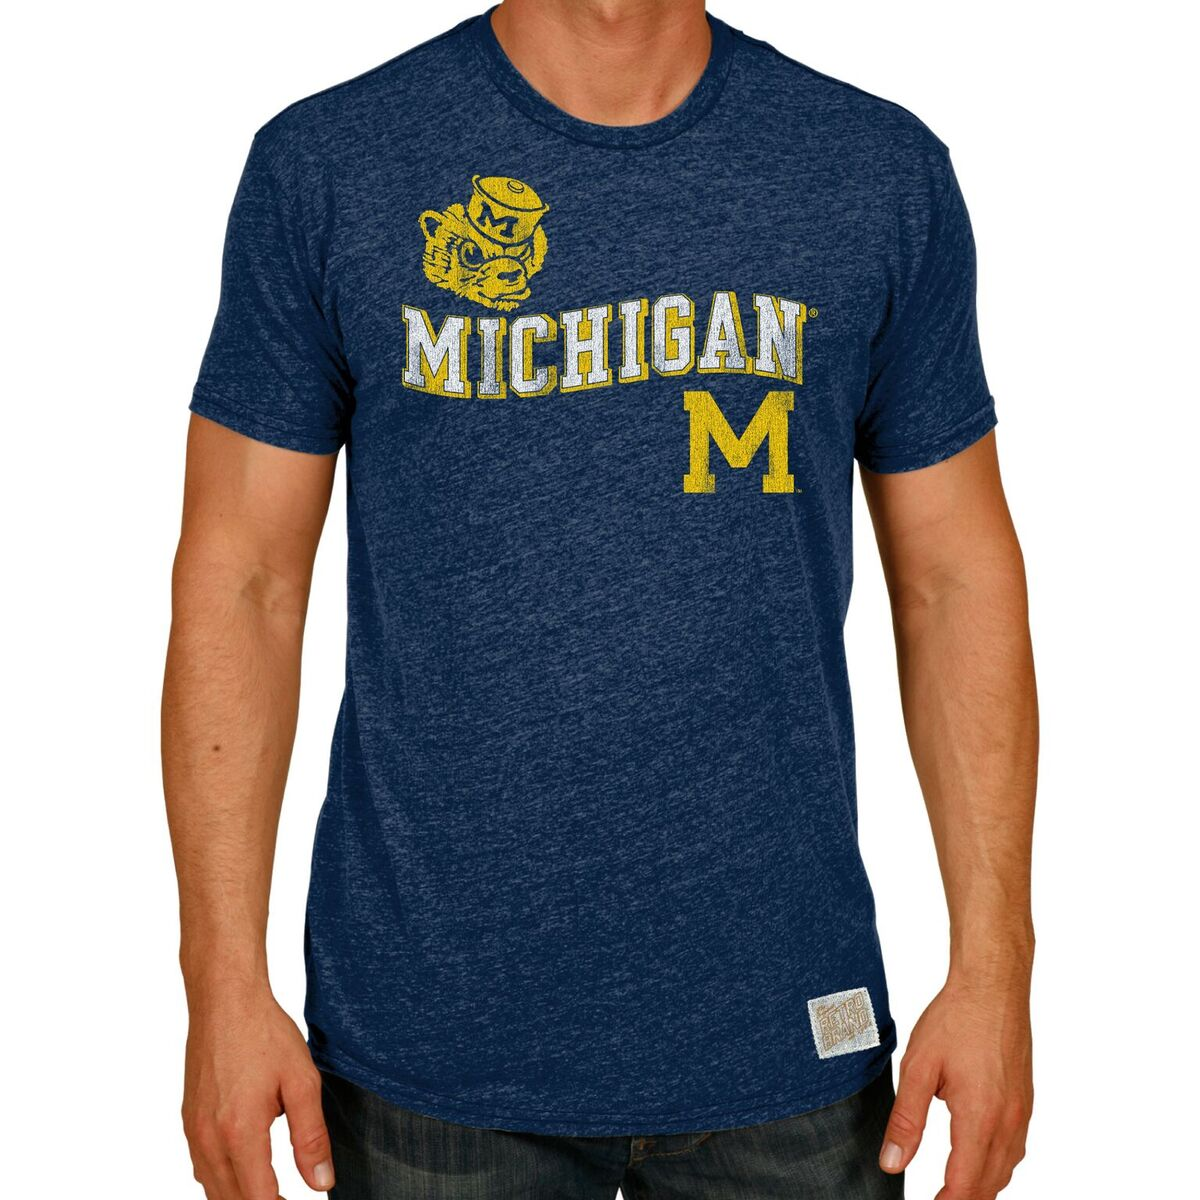 Michigan Wolverines Men's Short Sleeve Triblend Tee